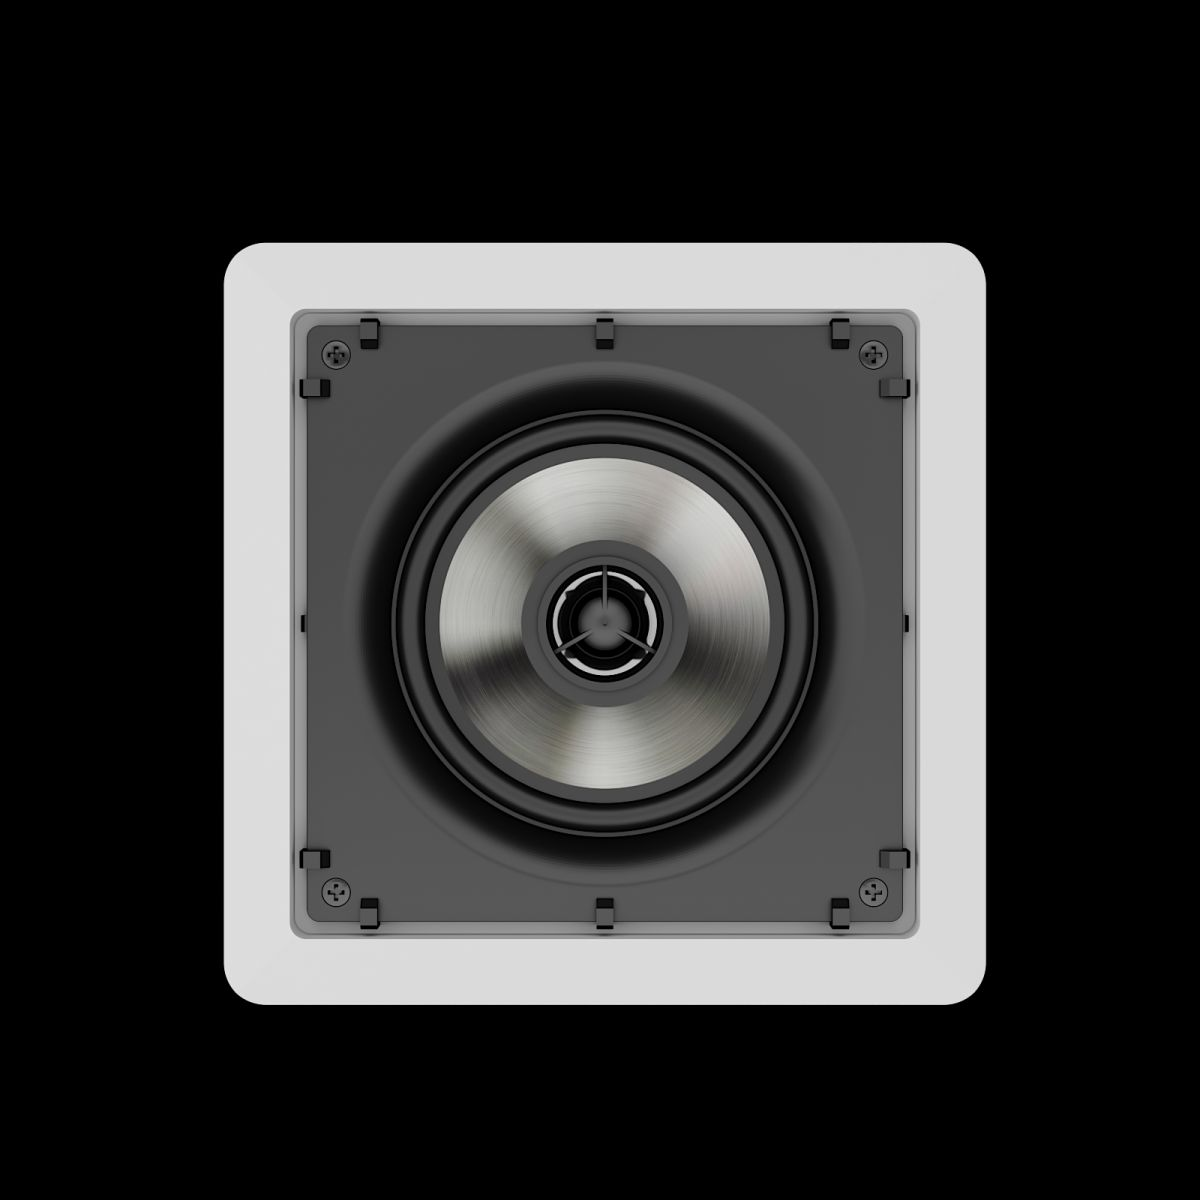 "Caixa de Embutir Loud Audio SQ5-50 Quadrada 5"" (UNIT)"